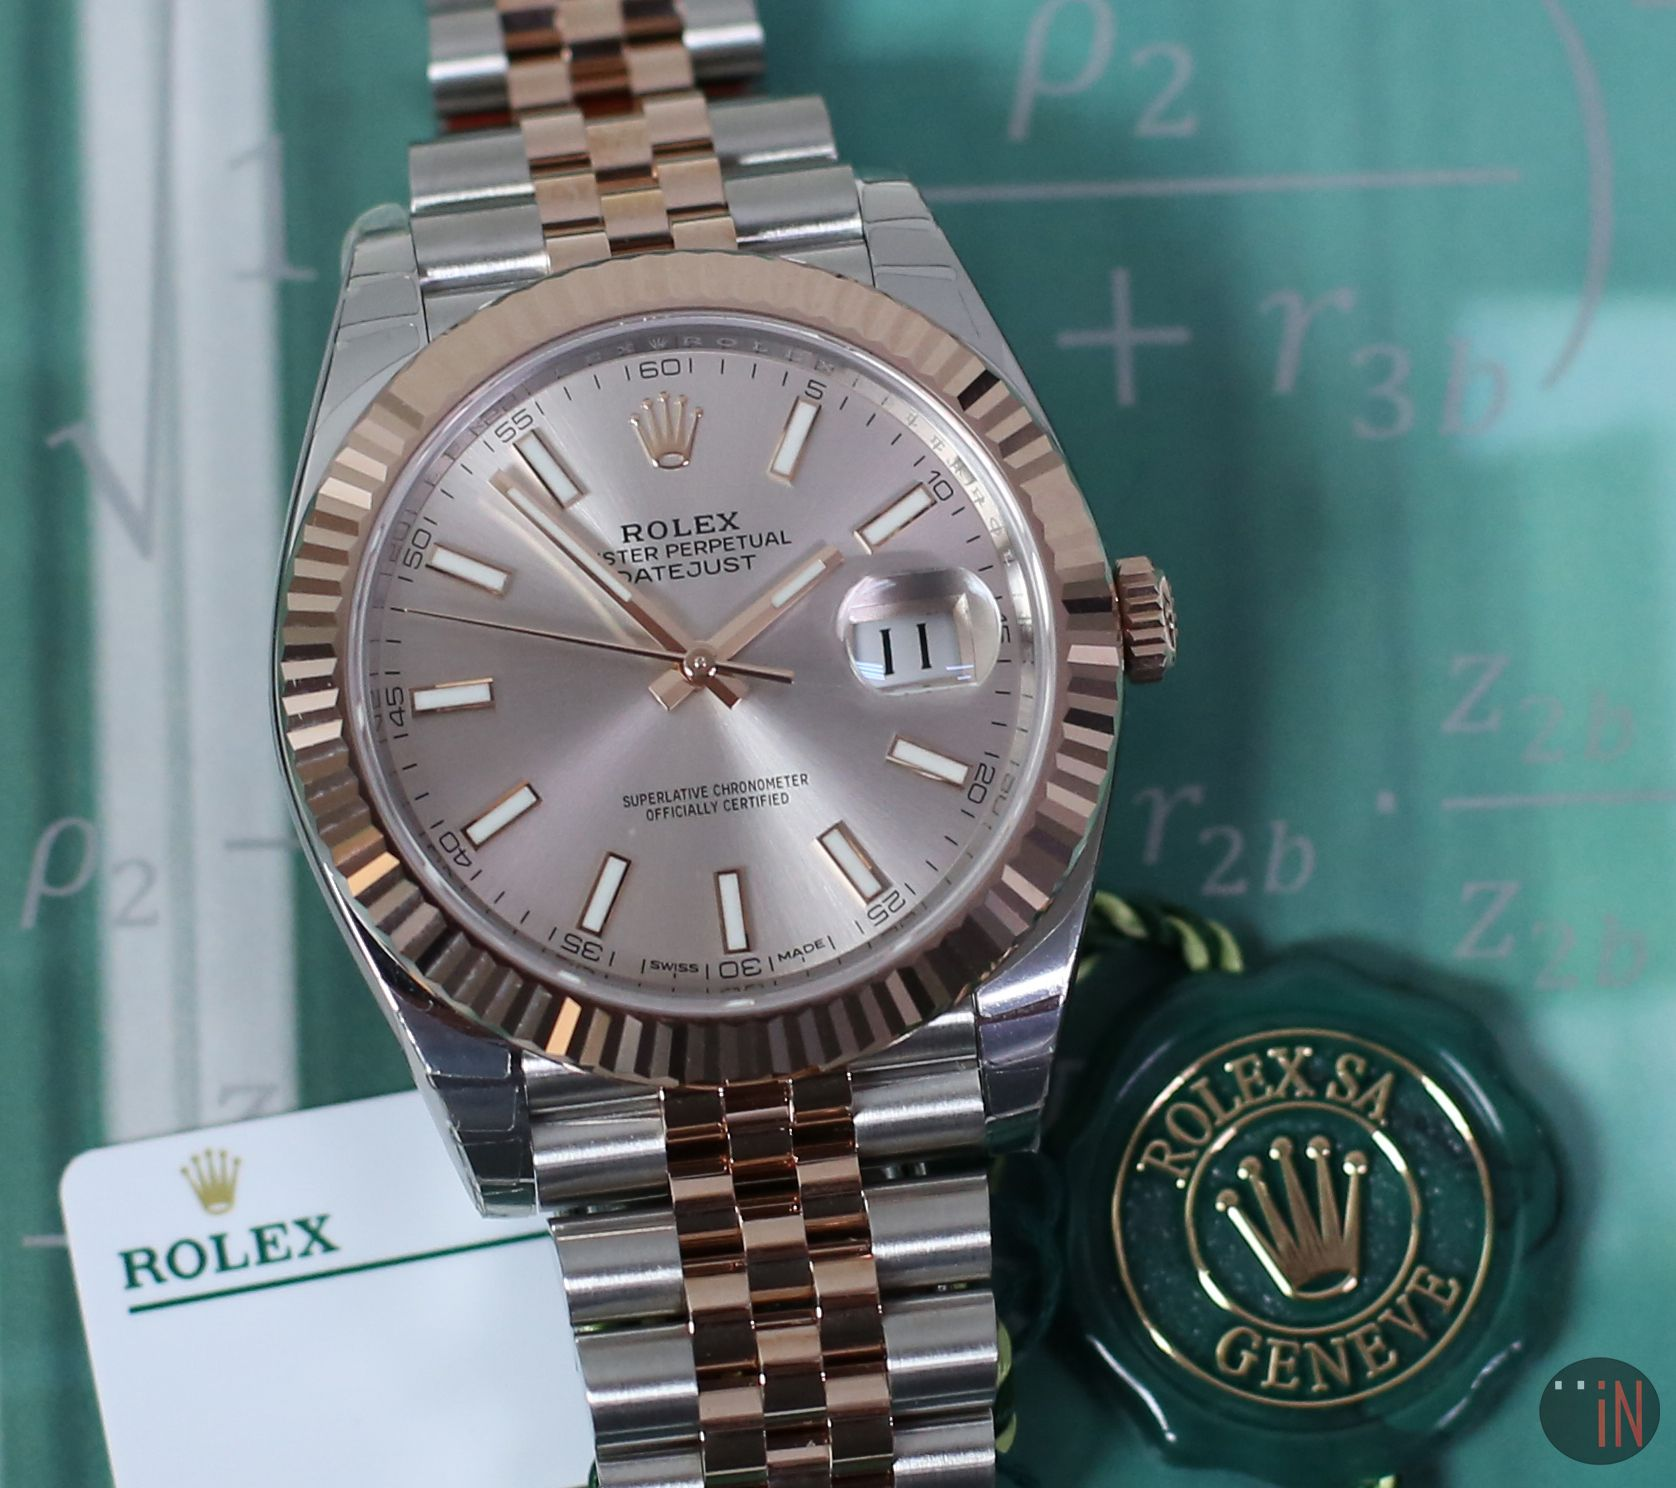 5486524a5d3 Pin by Anthony Lam on Watch in 2019   Rolex datejust ii, Rolex ...